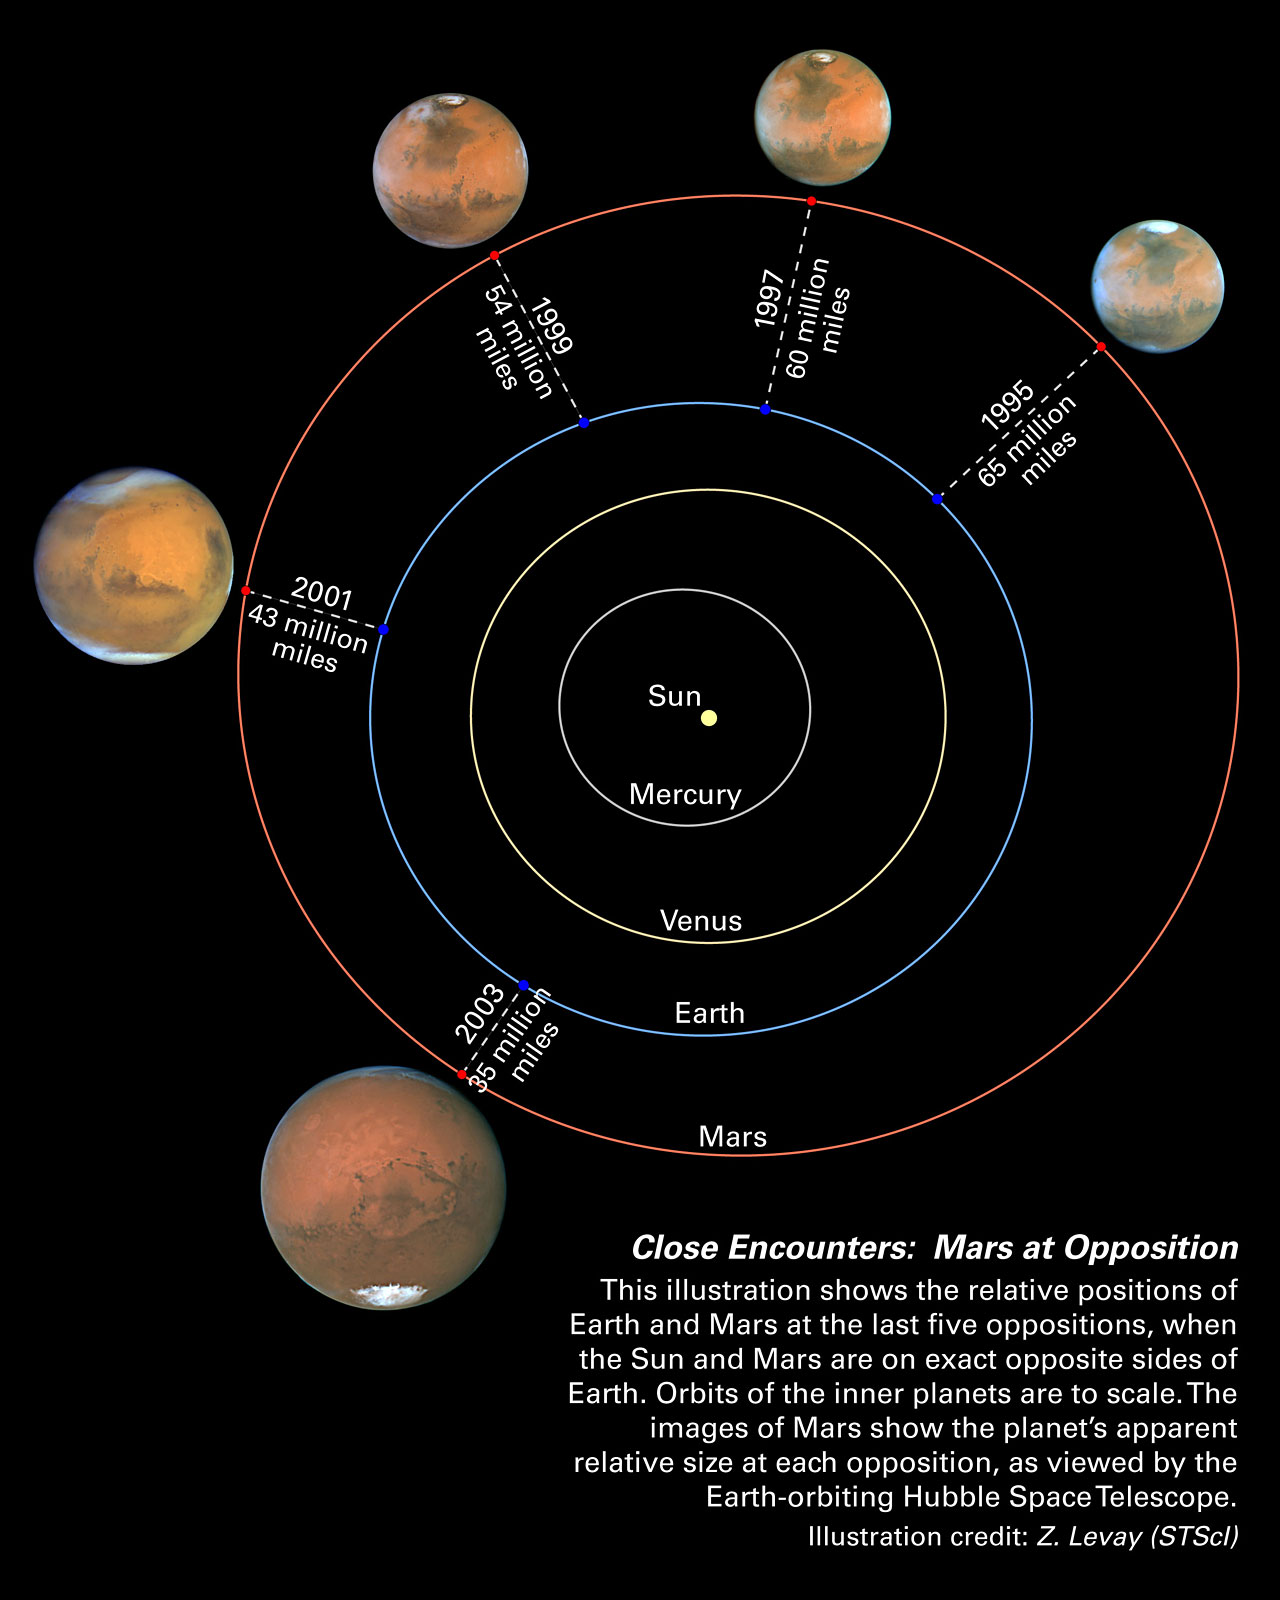 Diagram Of The Sun And The Planets.Mars Oppositions Solar System Diagram Esa Hubble